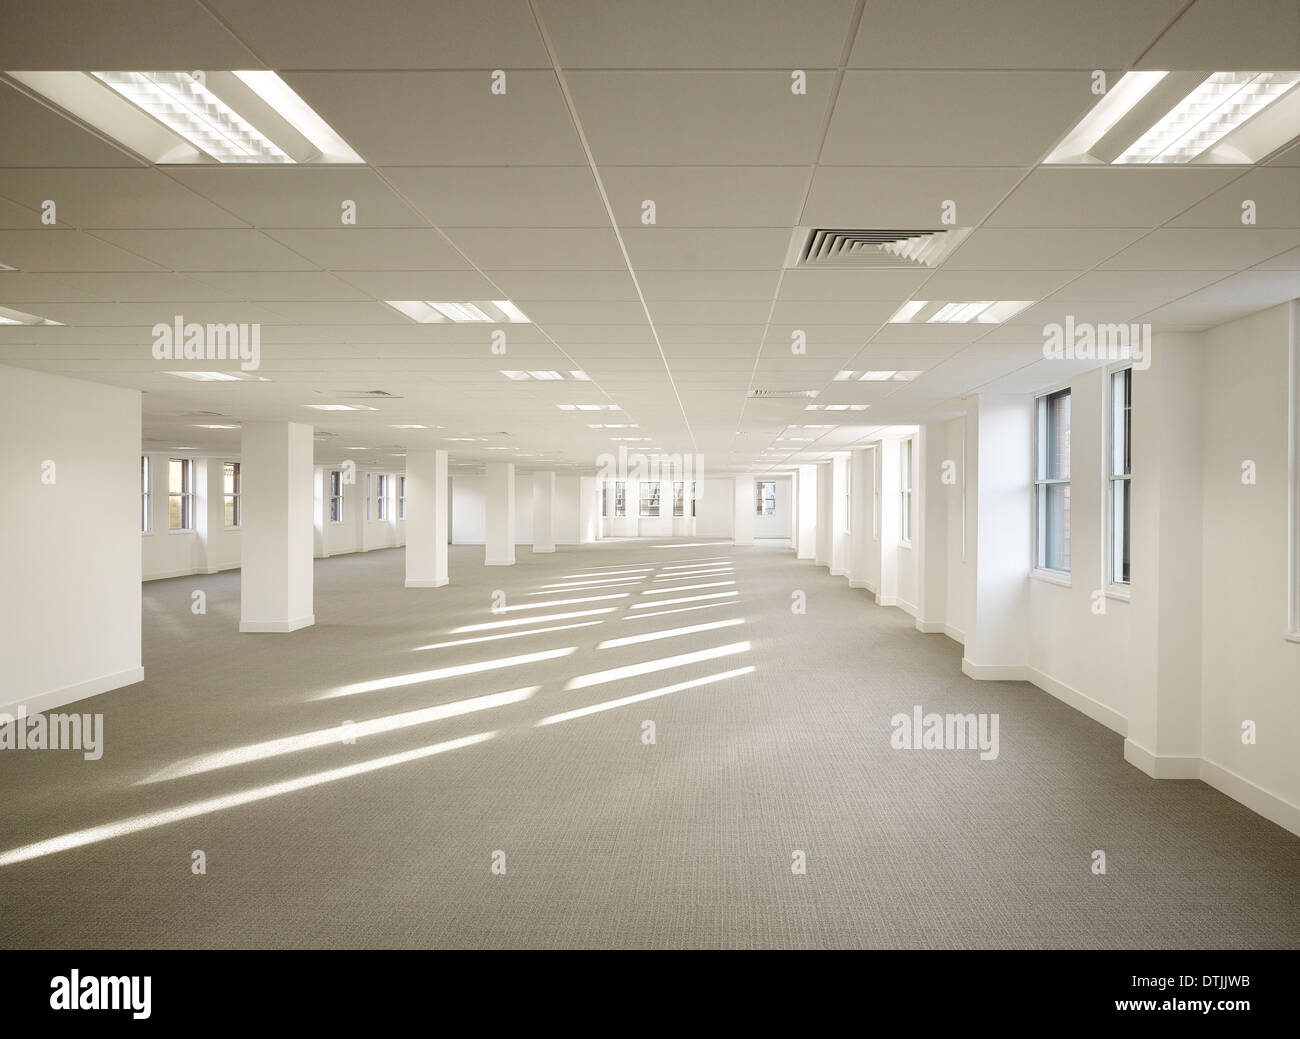 Empty interior of commercial building, King Street, Leeds, Yorkshire. - Stock Image